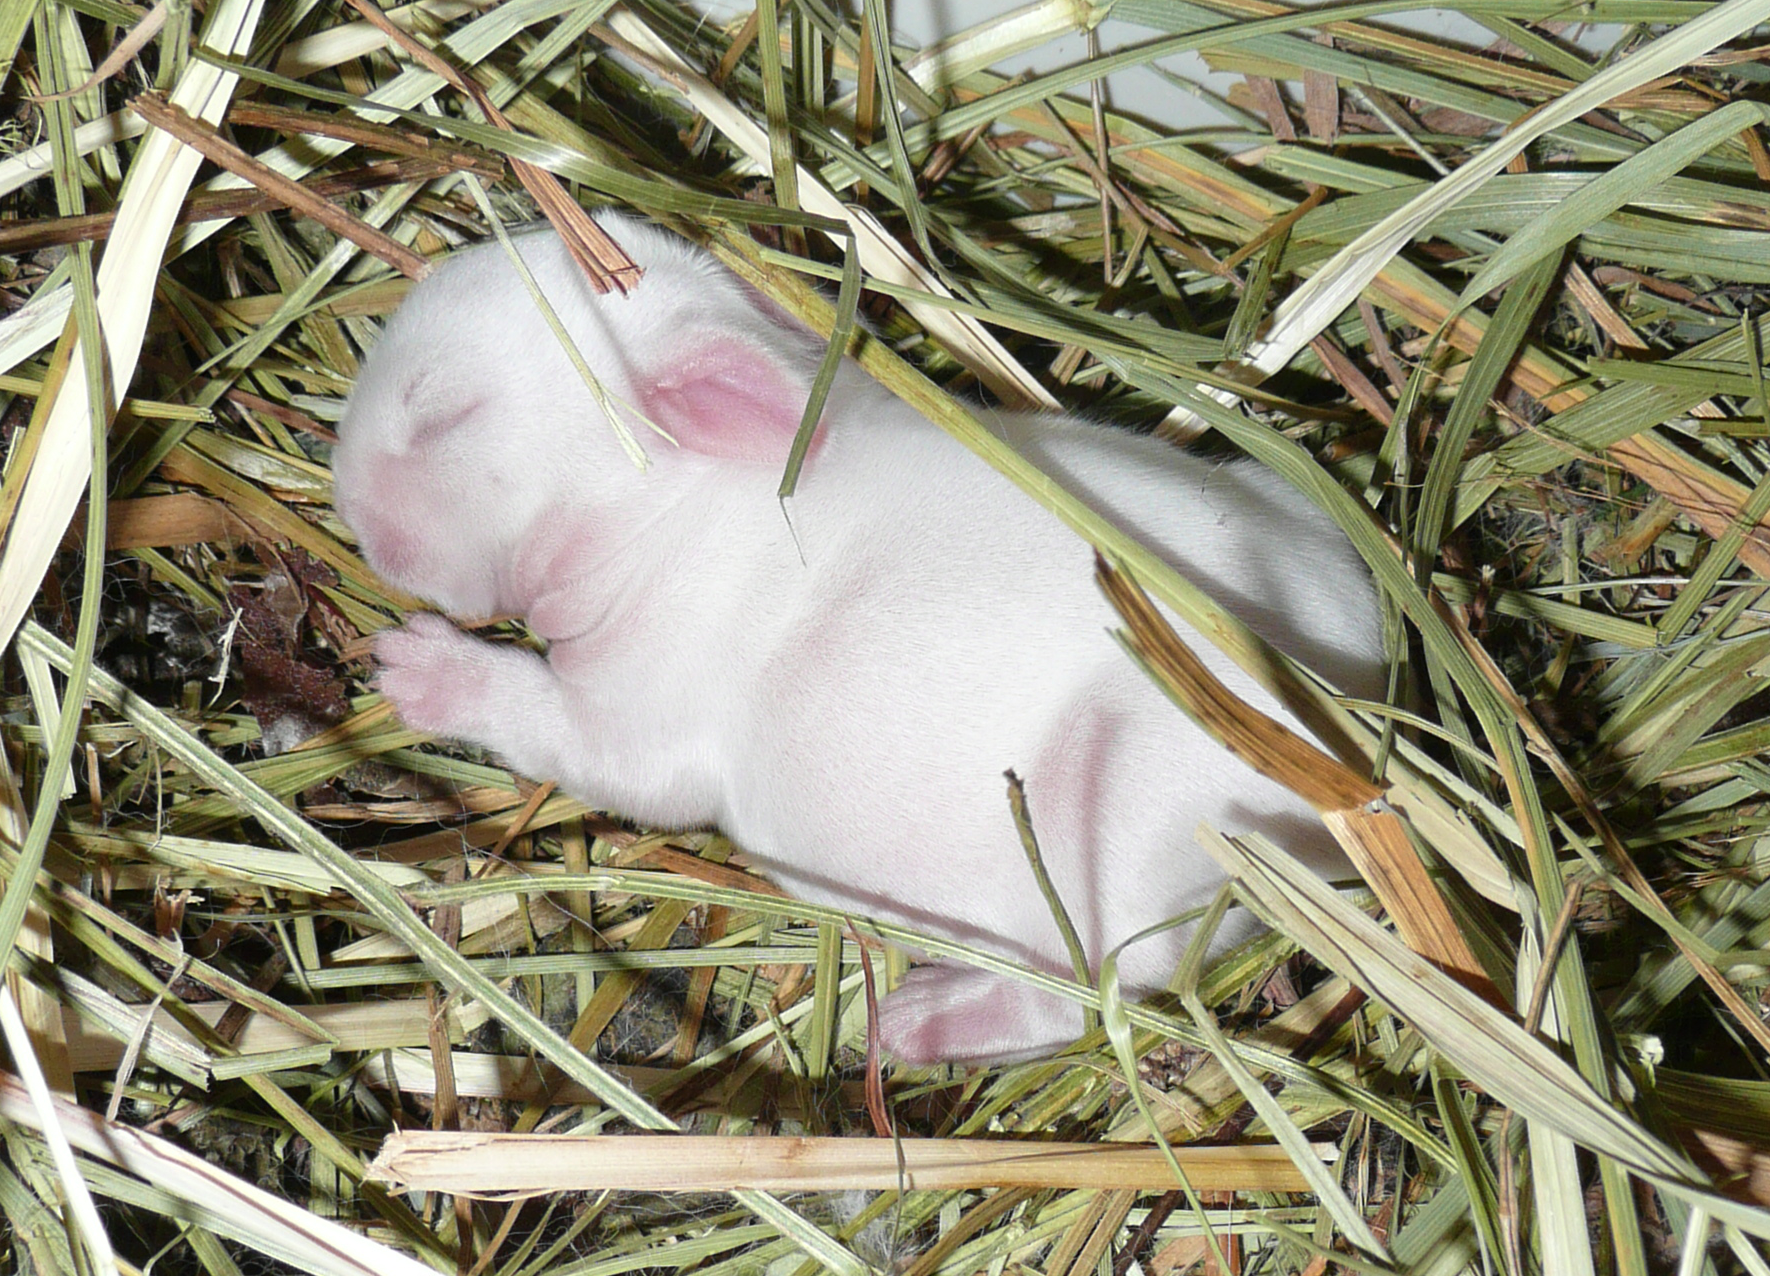 Three-Day-Old Bunny Sleeps Soundly